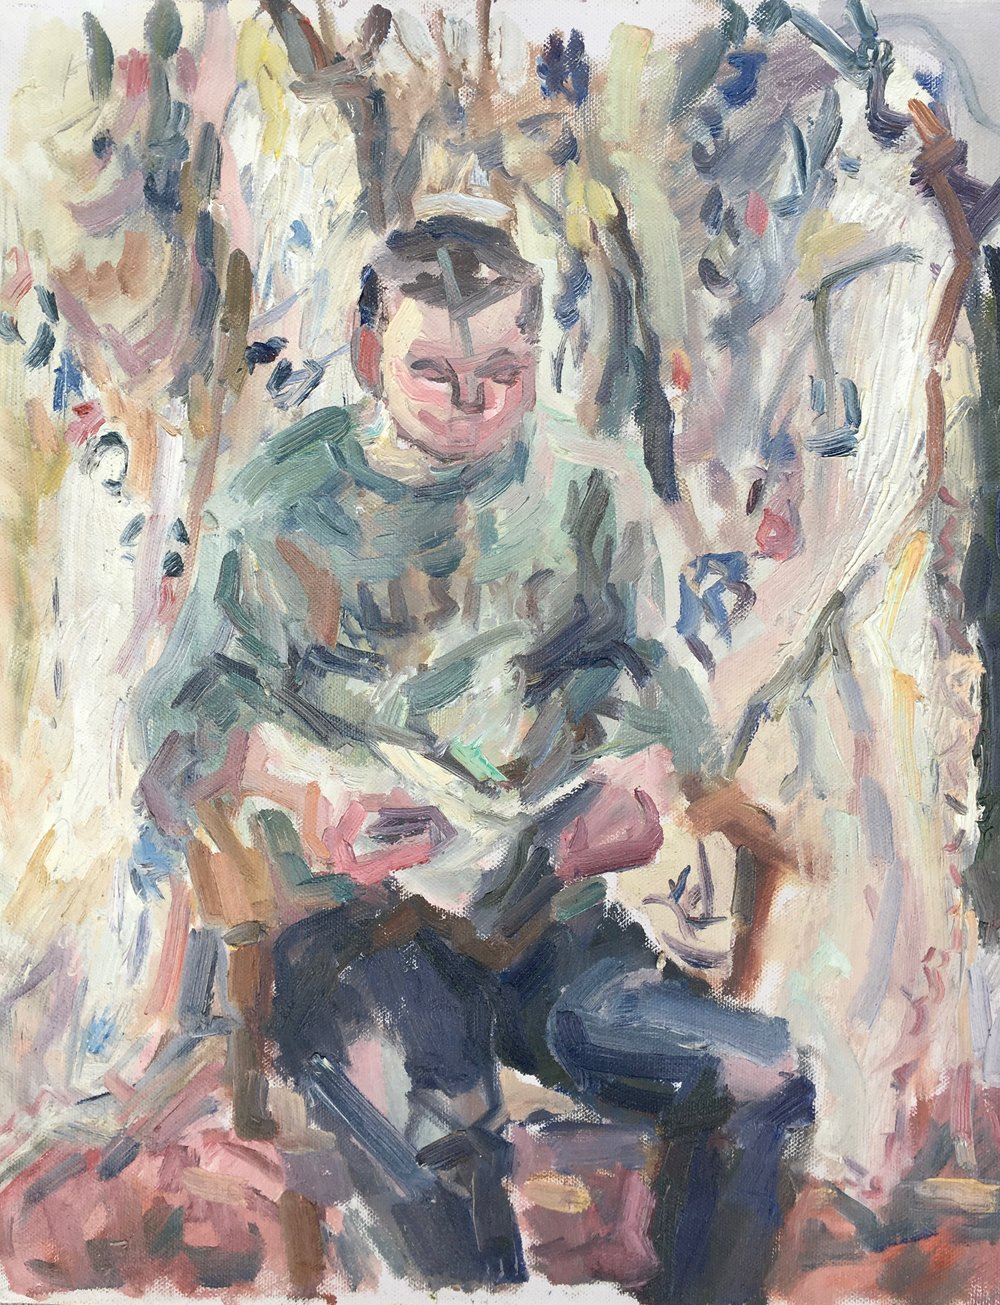 "Patrick Reading , oil on canvas, 20"" x 15.5"", 2018"